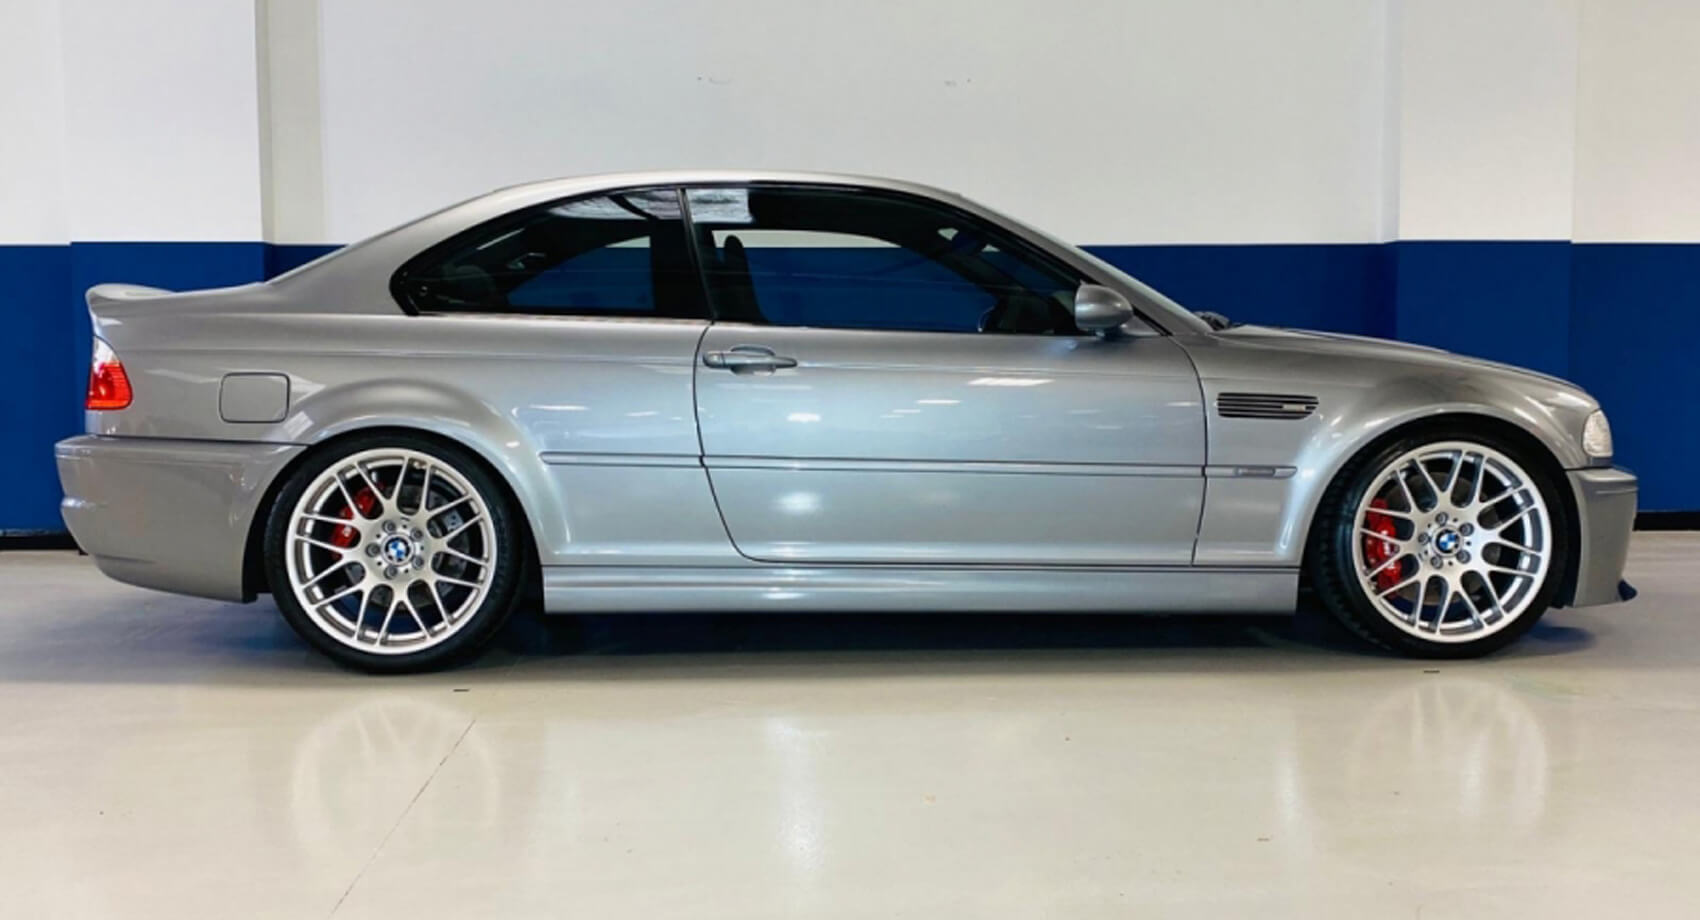 2004 Bmw M3 Csl For Sale Time To Check Those Finances Carscoops